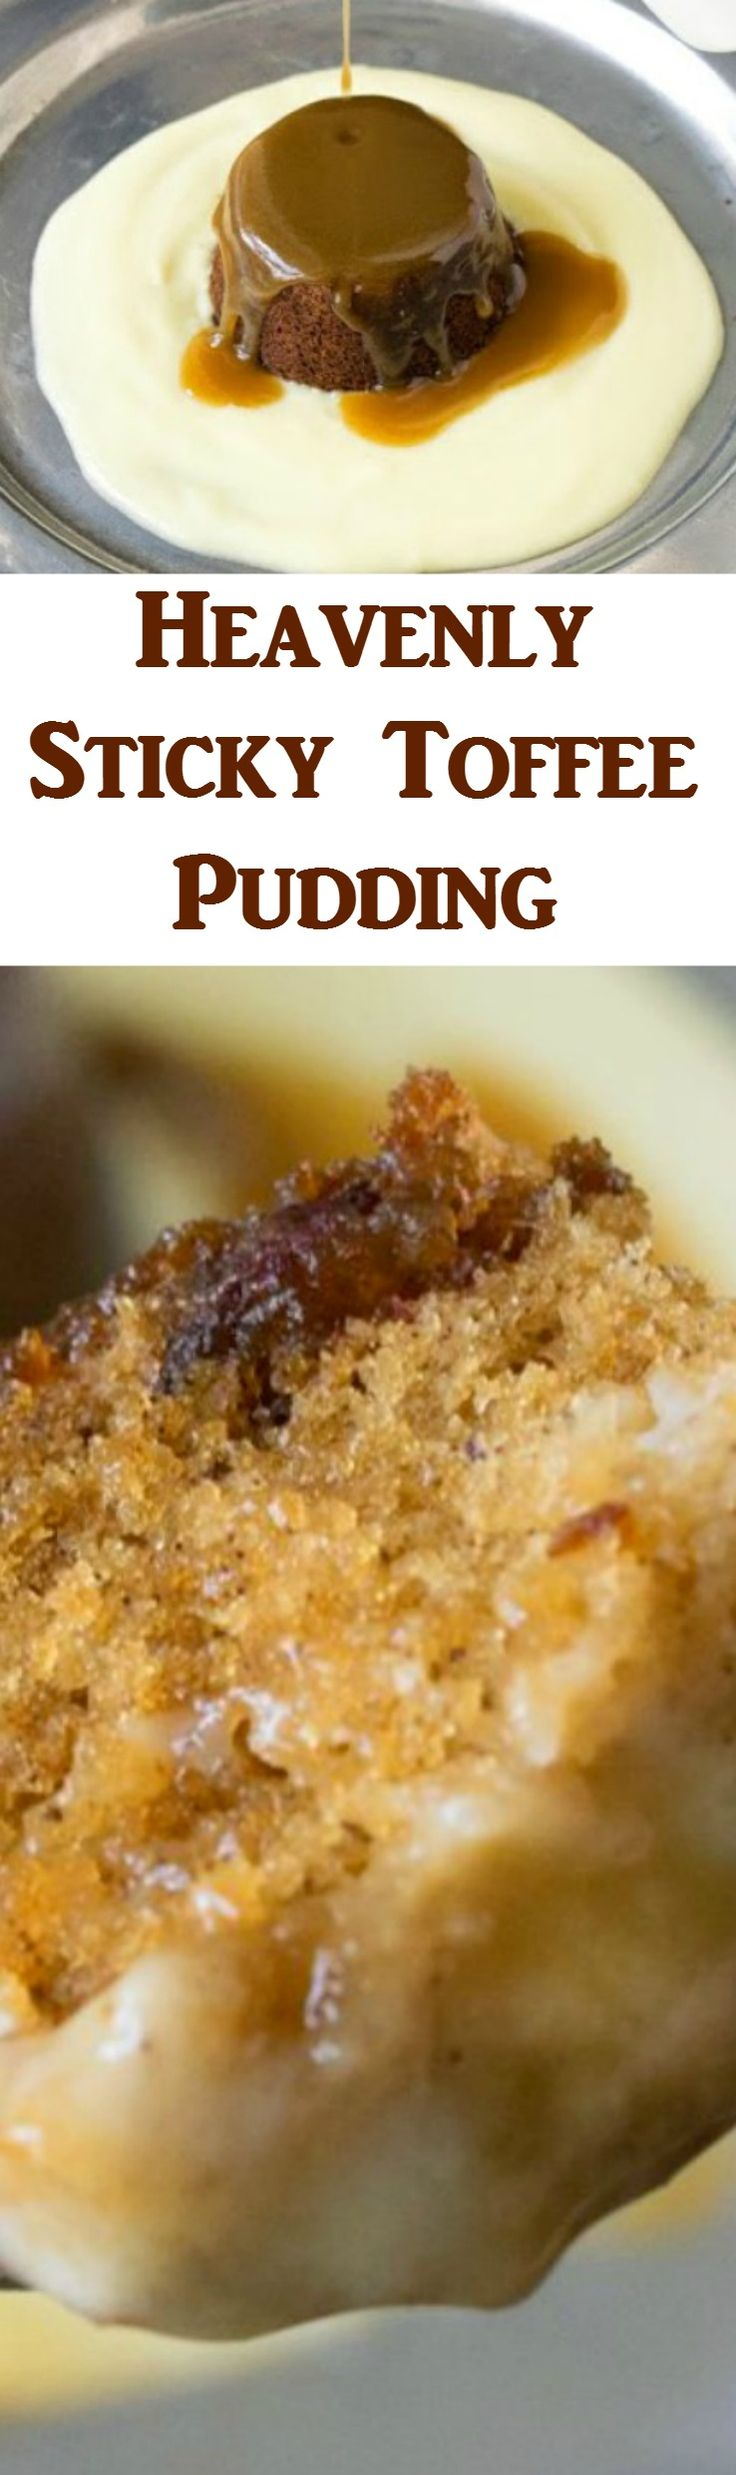 Heavenly Sticky Toffee Pudding is a classic English dessert, served with custard and a delicious toffee sauce, it tastes out of this world!